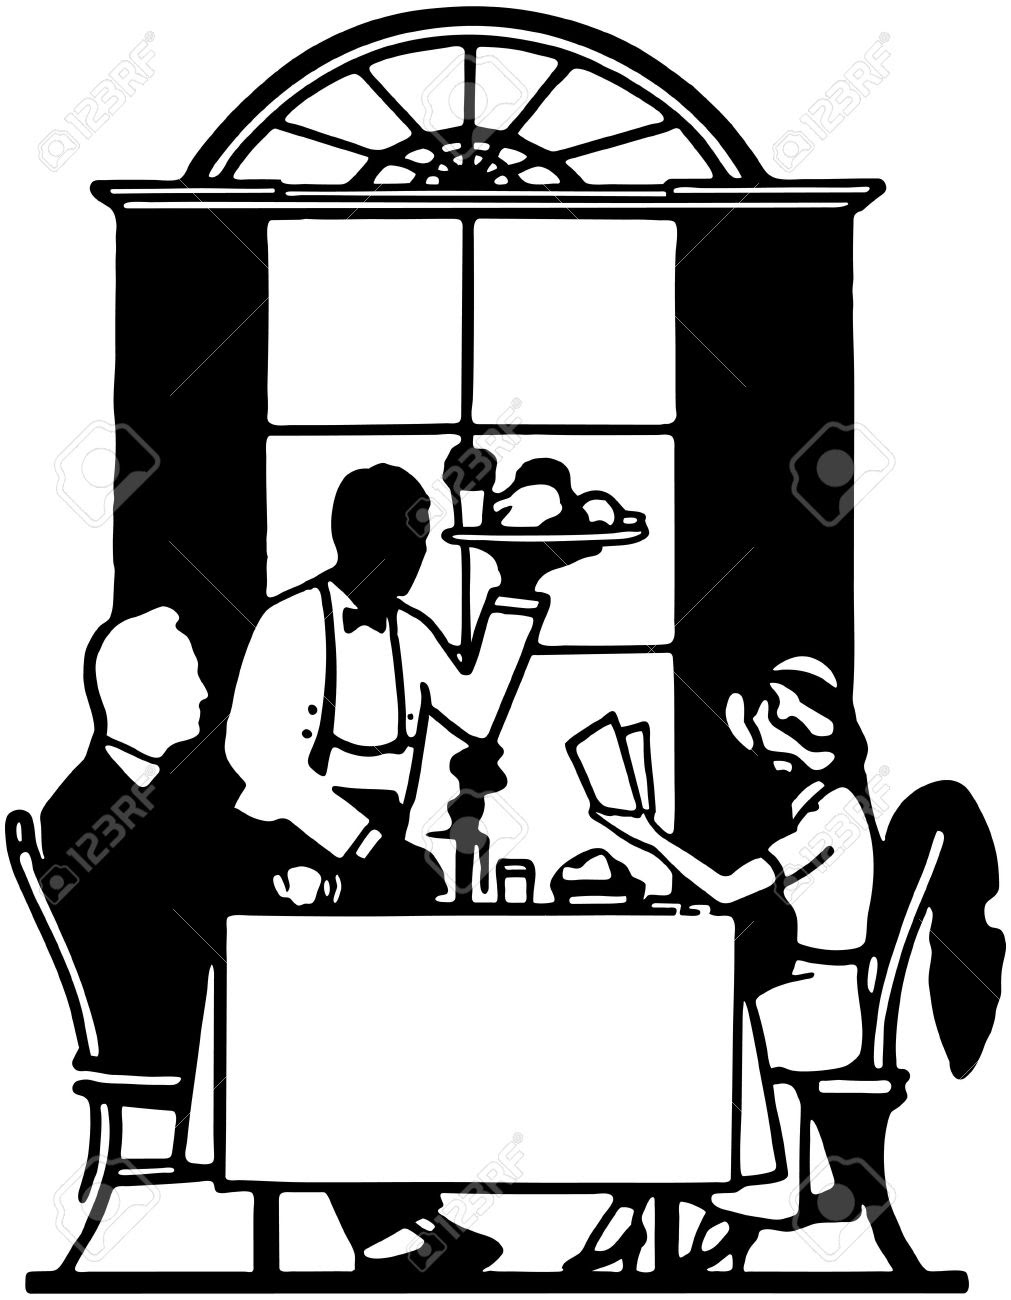 Fine Dining Clipart Image - Chef holding a serving tray of food he prepared  | Food clipart, Soup kitchen, Cream soup recipes